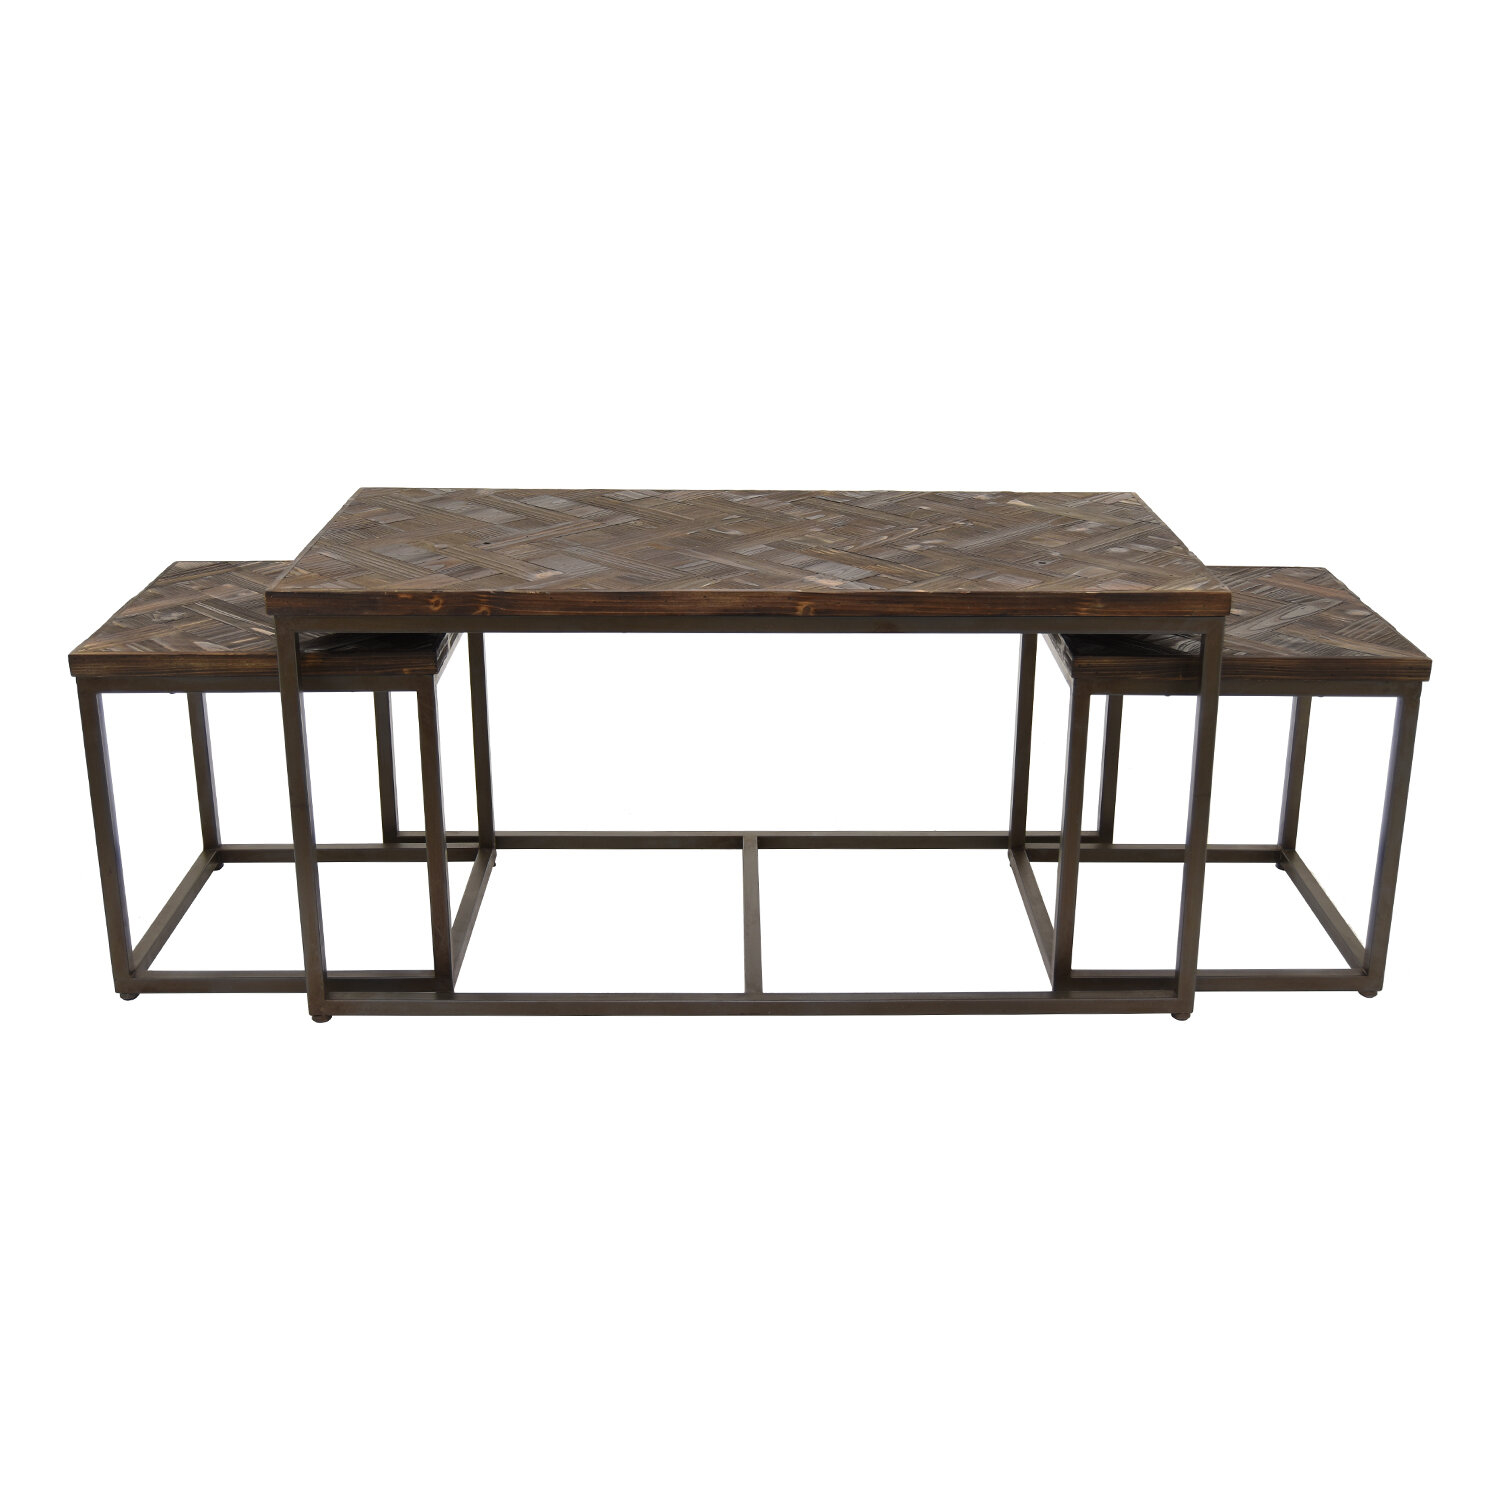 Nesting Coffee Table You Ll Love In 2021 Visualhunt